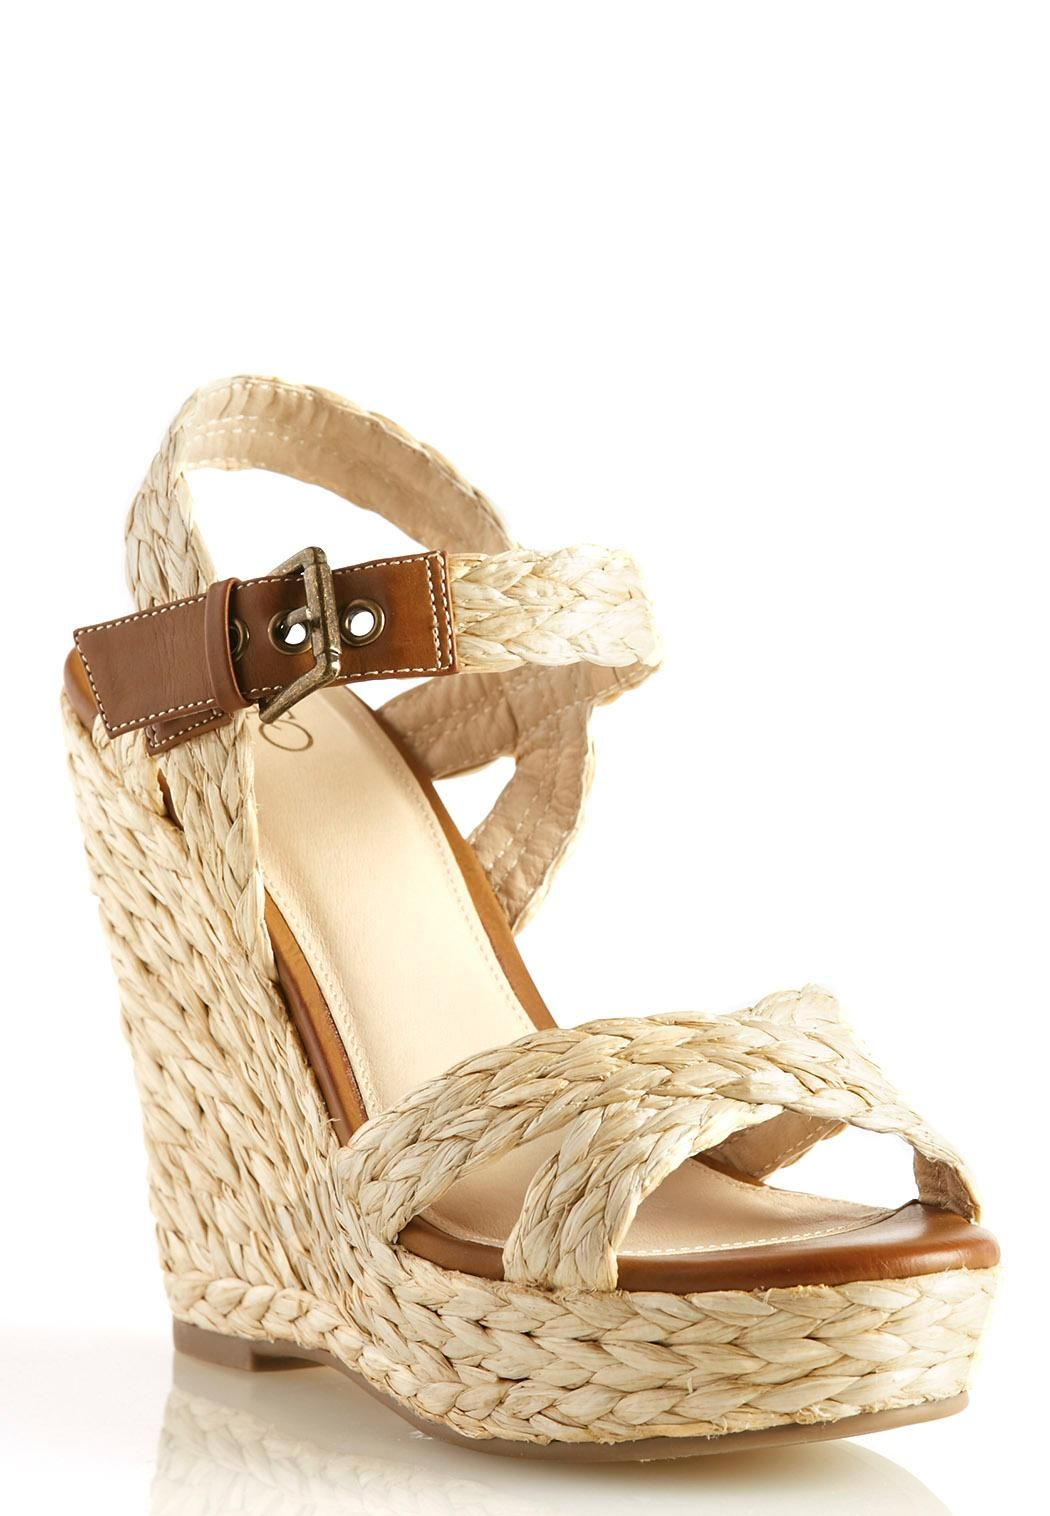 Braided Straw Wedge Sandals Sandals Wedge Sandals Shoes